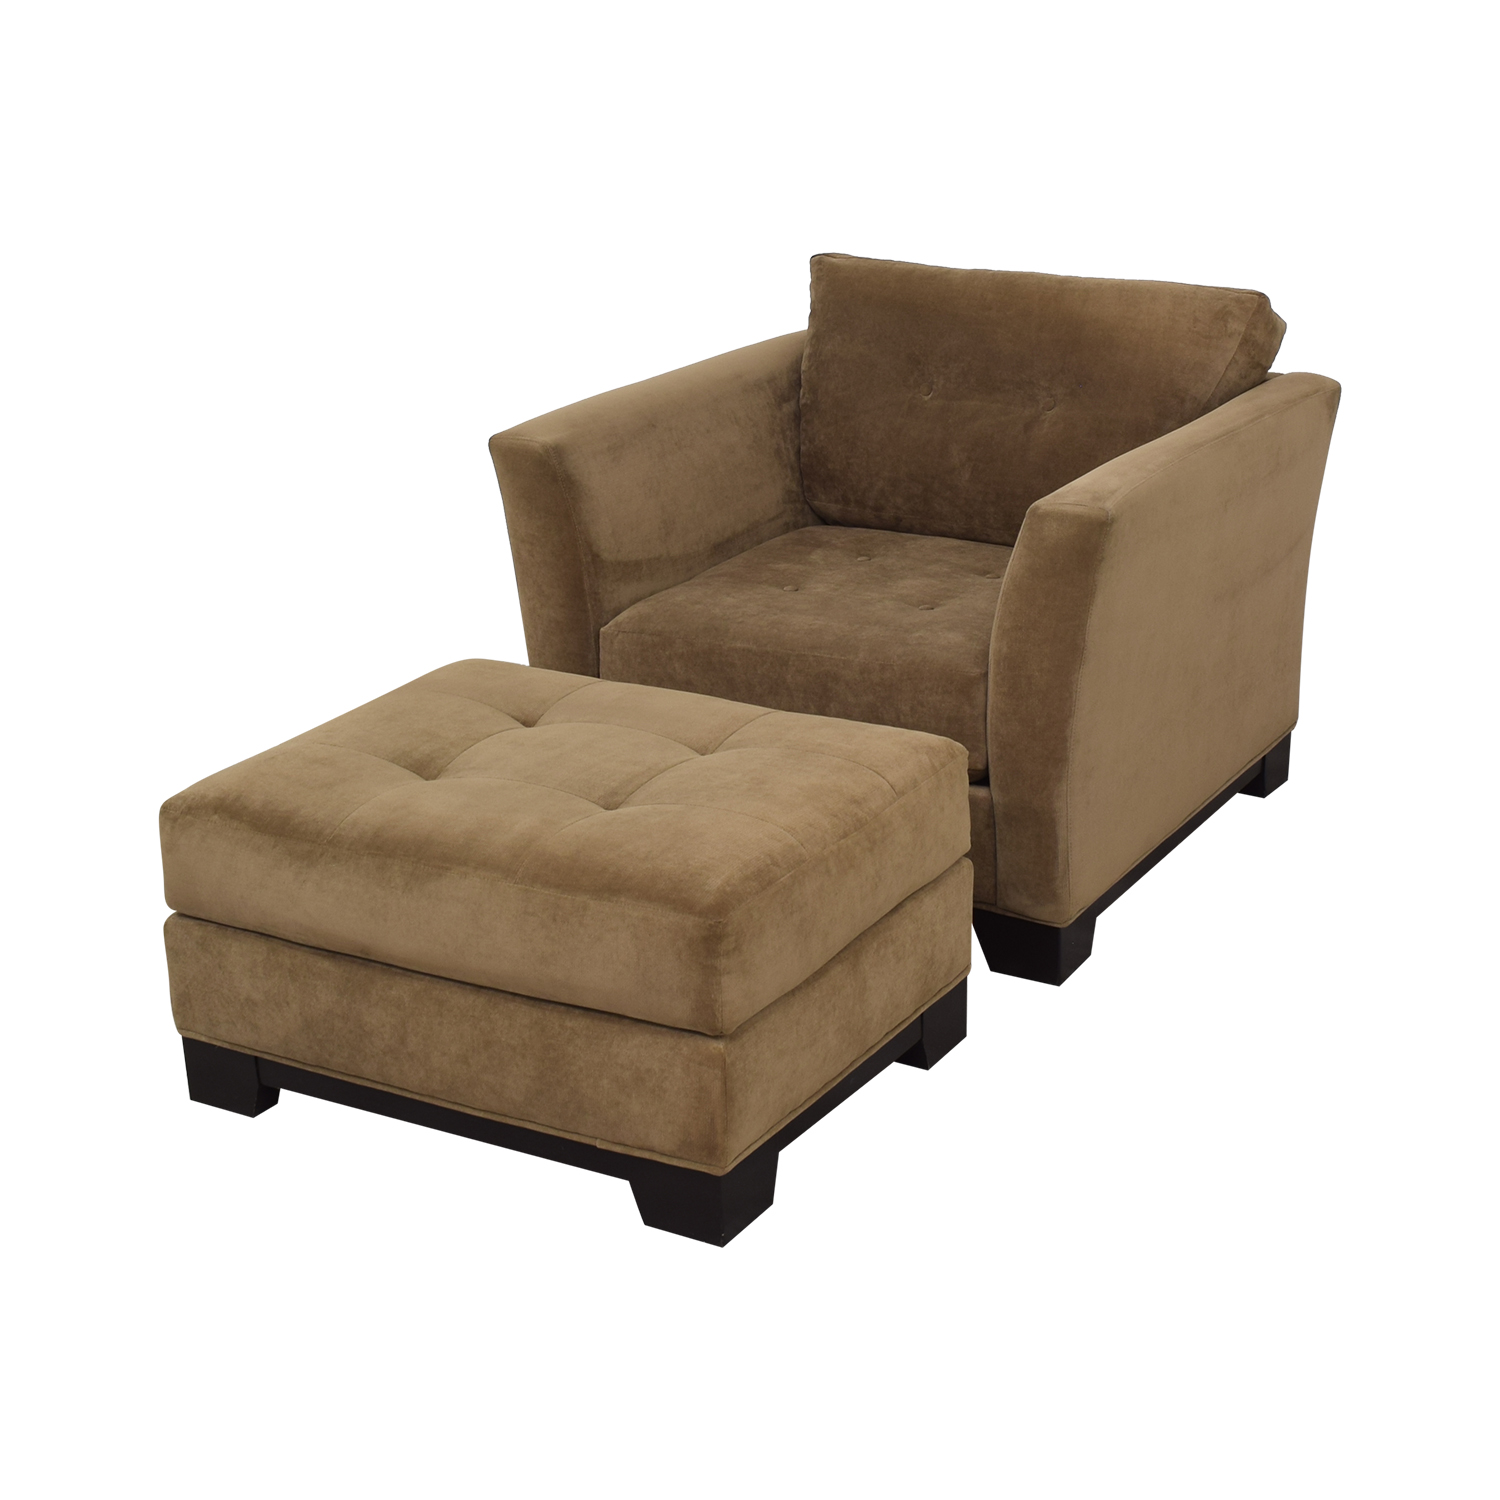 Macy's Macy's Jonathan Louis Armchair with Ottoman dimensions